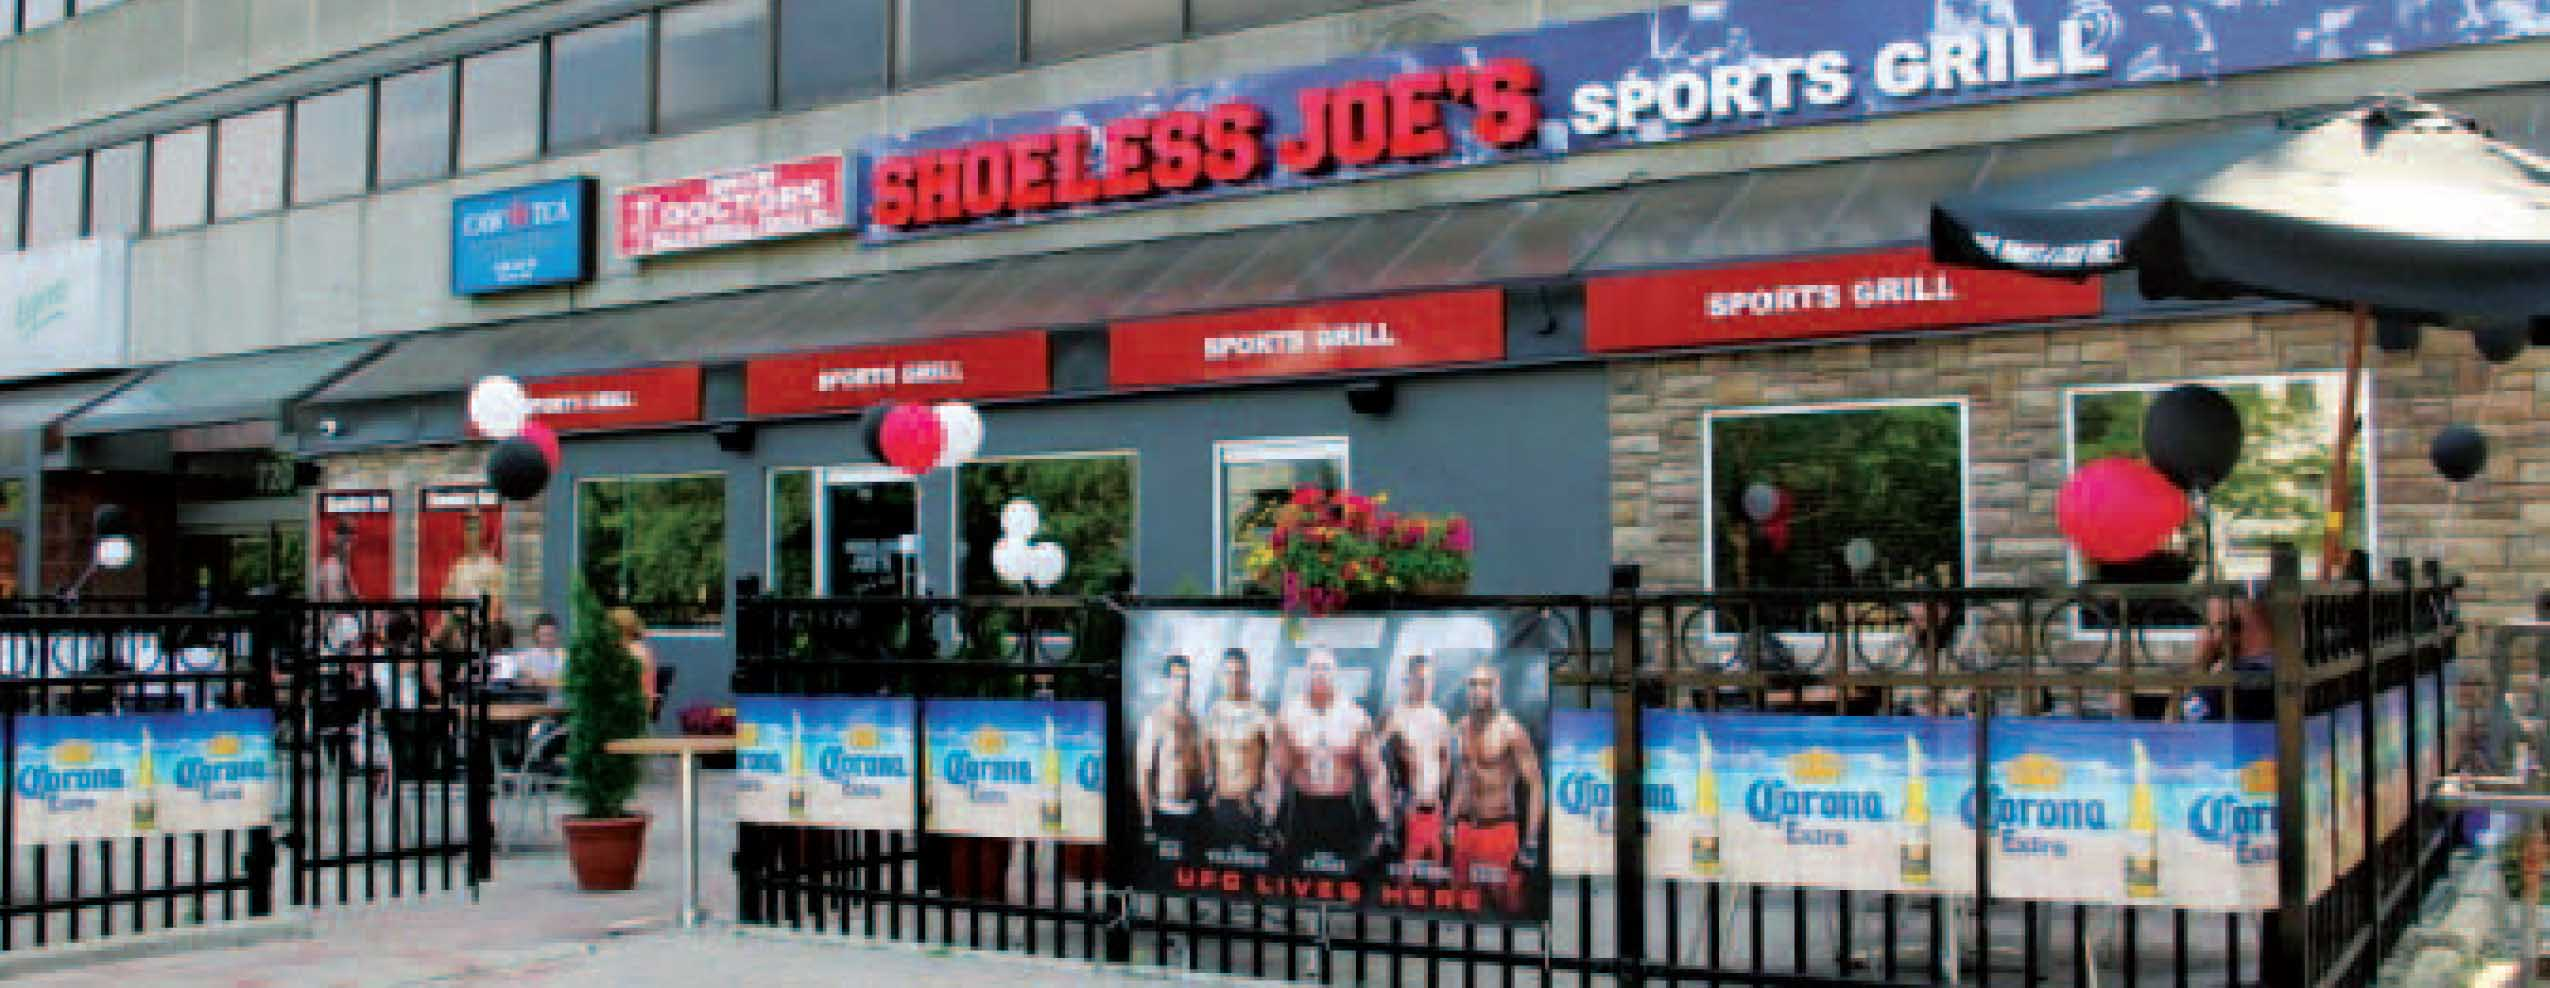 Fully-Fixtured Restaurant – Currently a Shoeless Joes